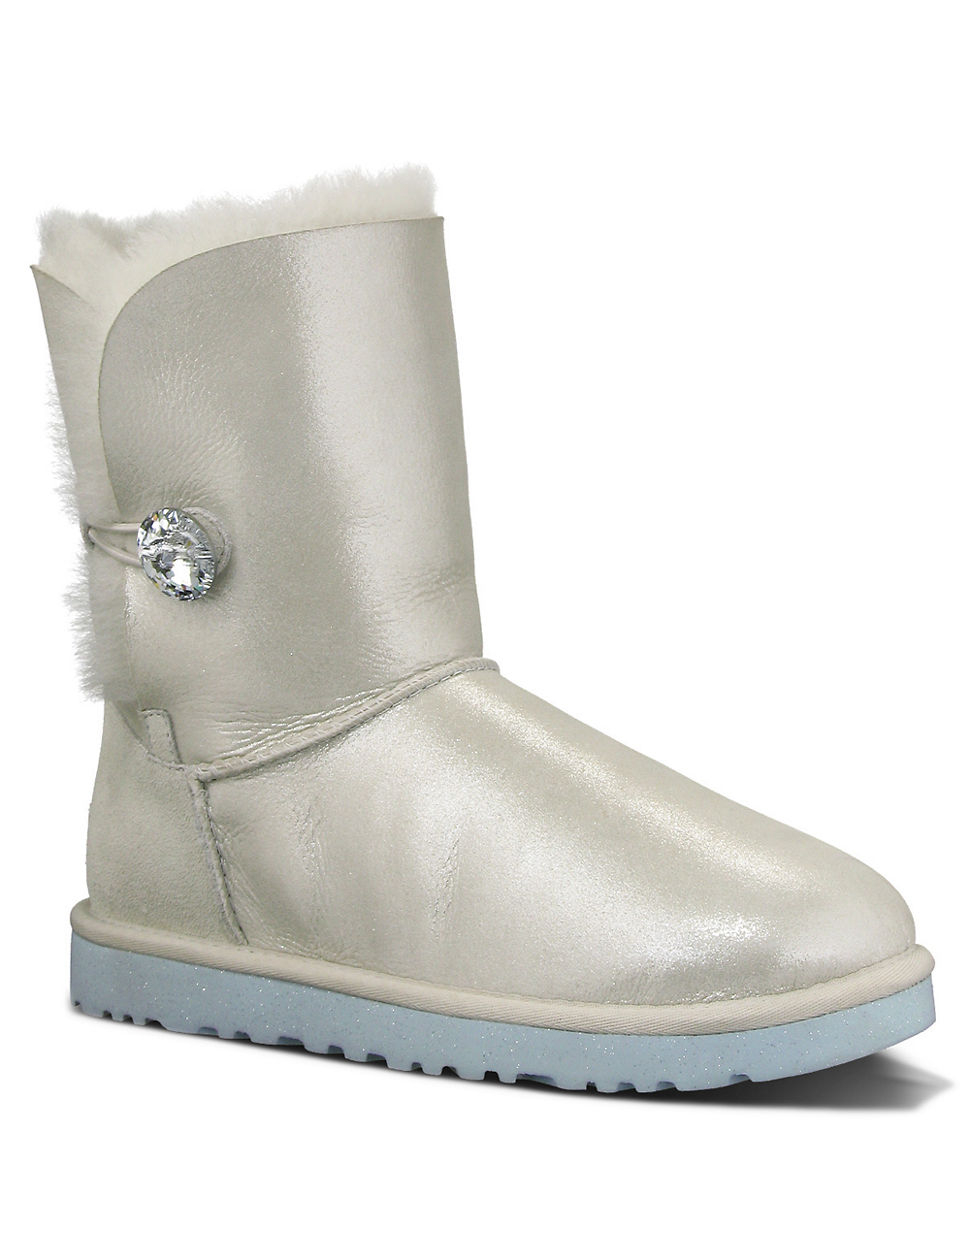 Where can u buy ugg boots. Shoes